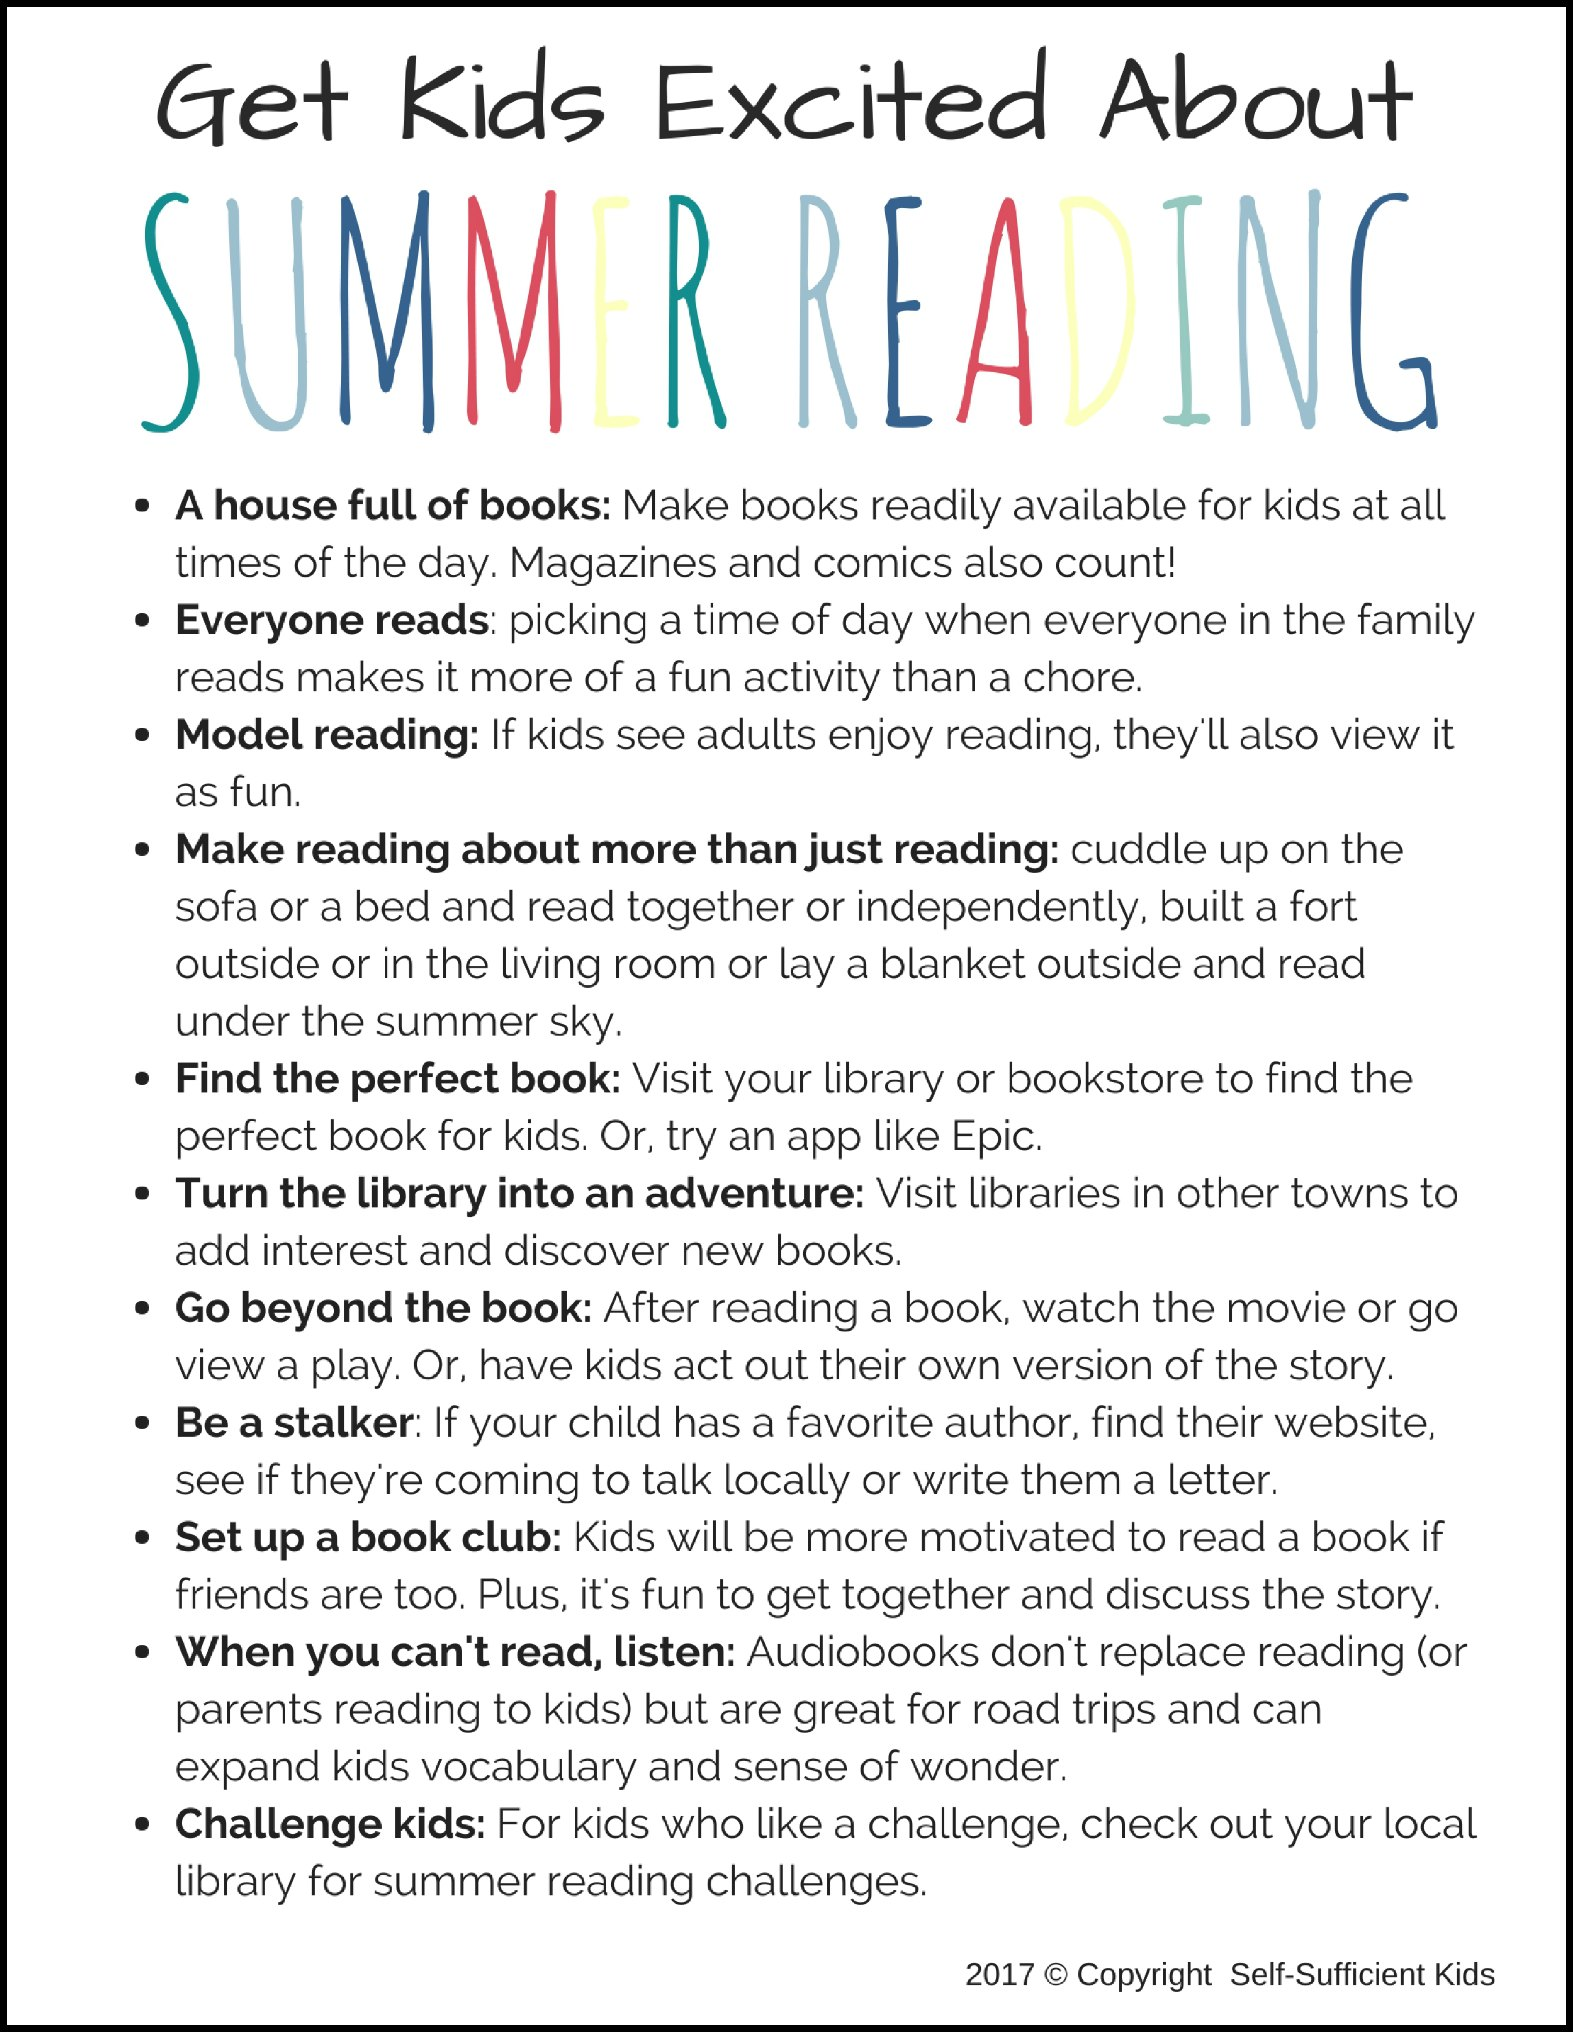 Get kids excited about summer reading with these tips and ideas